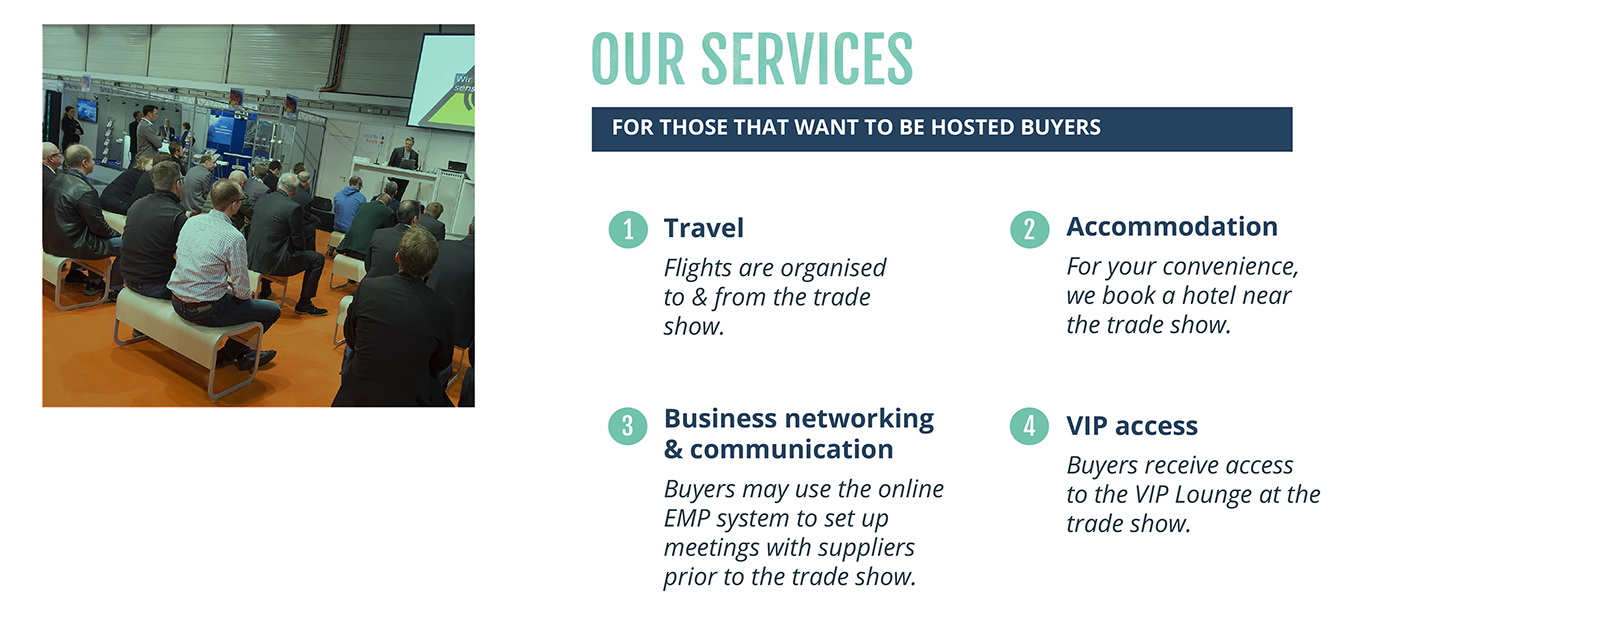 EPP HOSTED BUYER Services